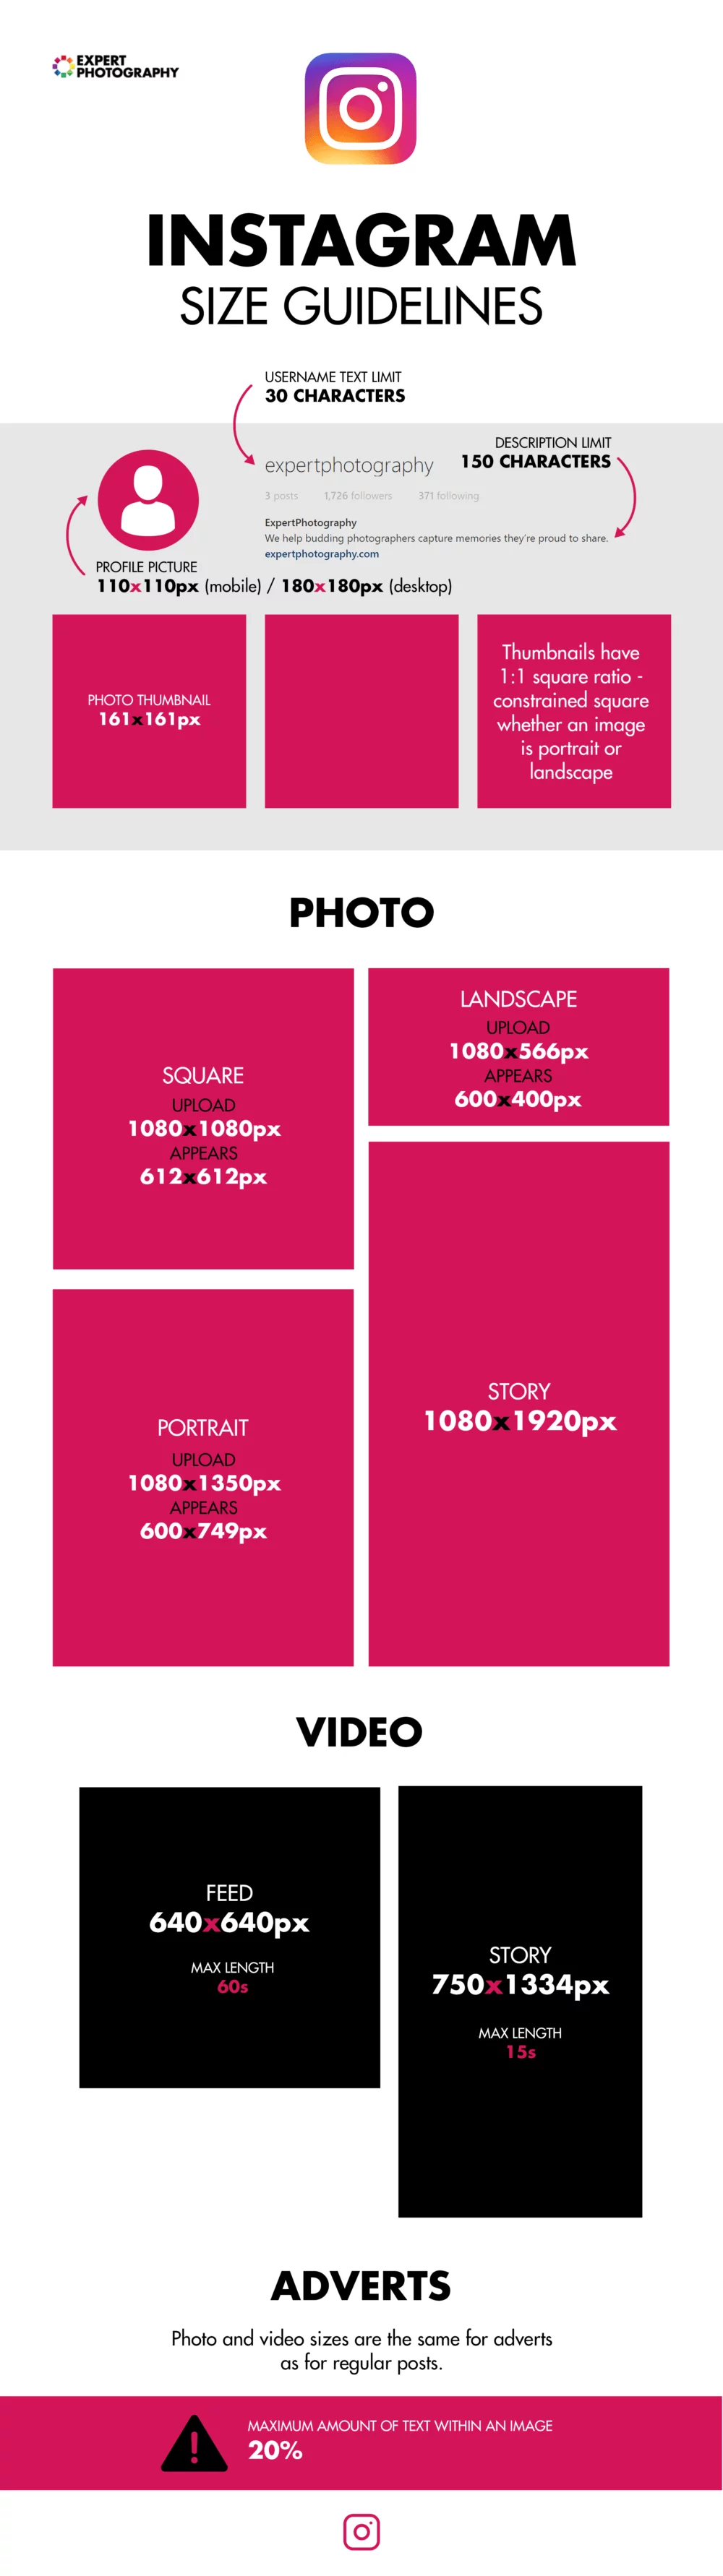 Instagram Profile Picture Size Guide 2021 (+ Free Template